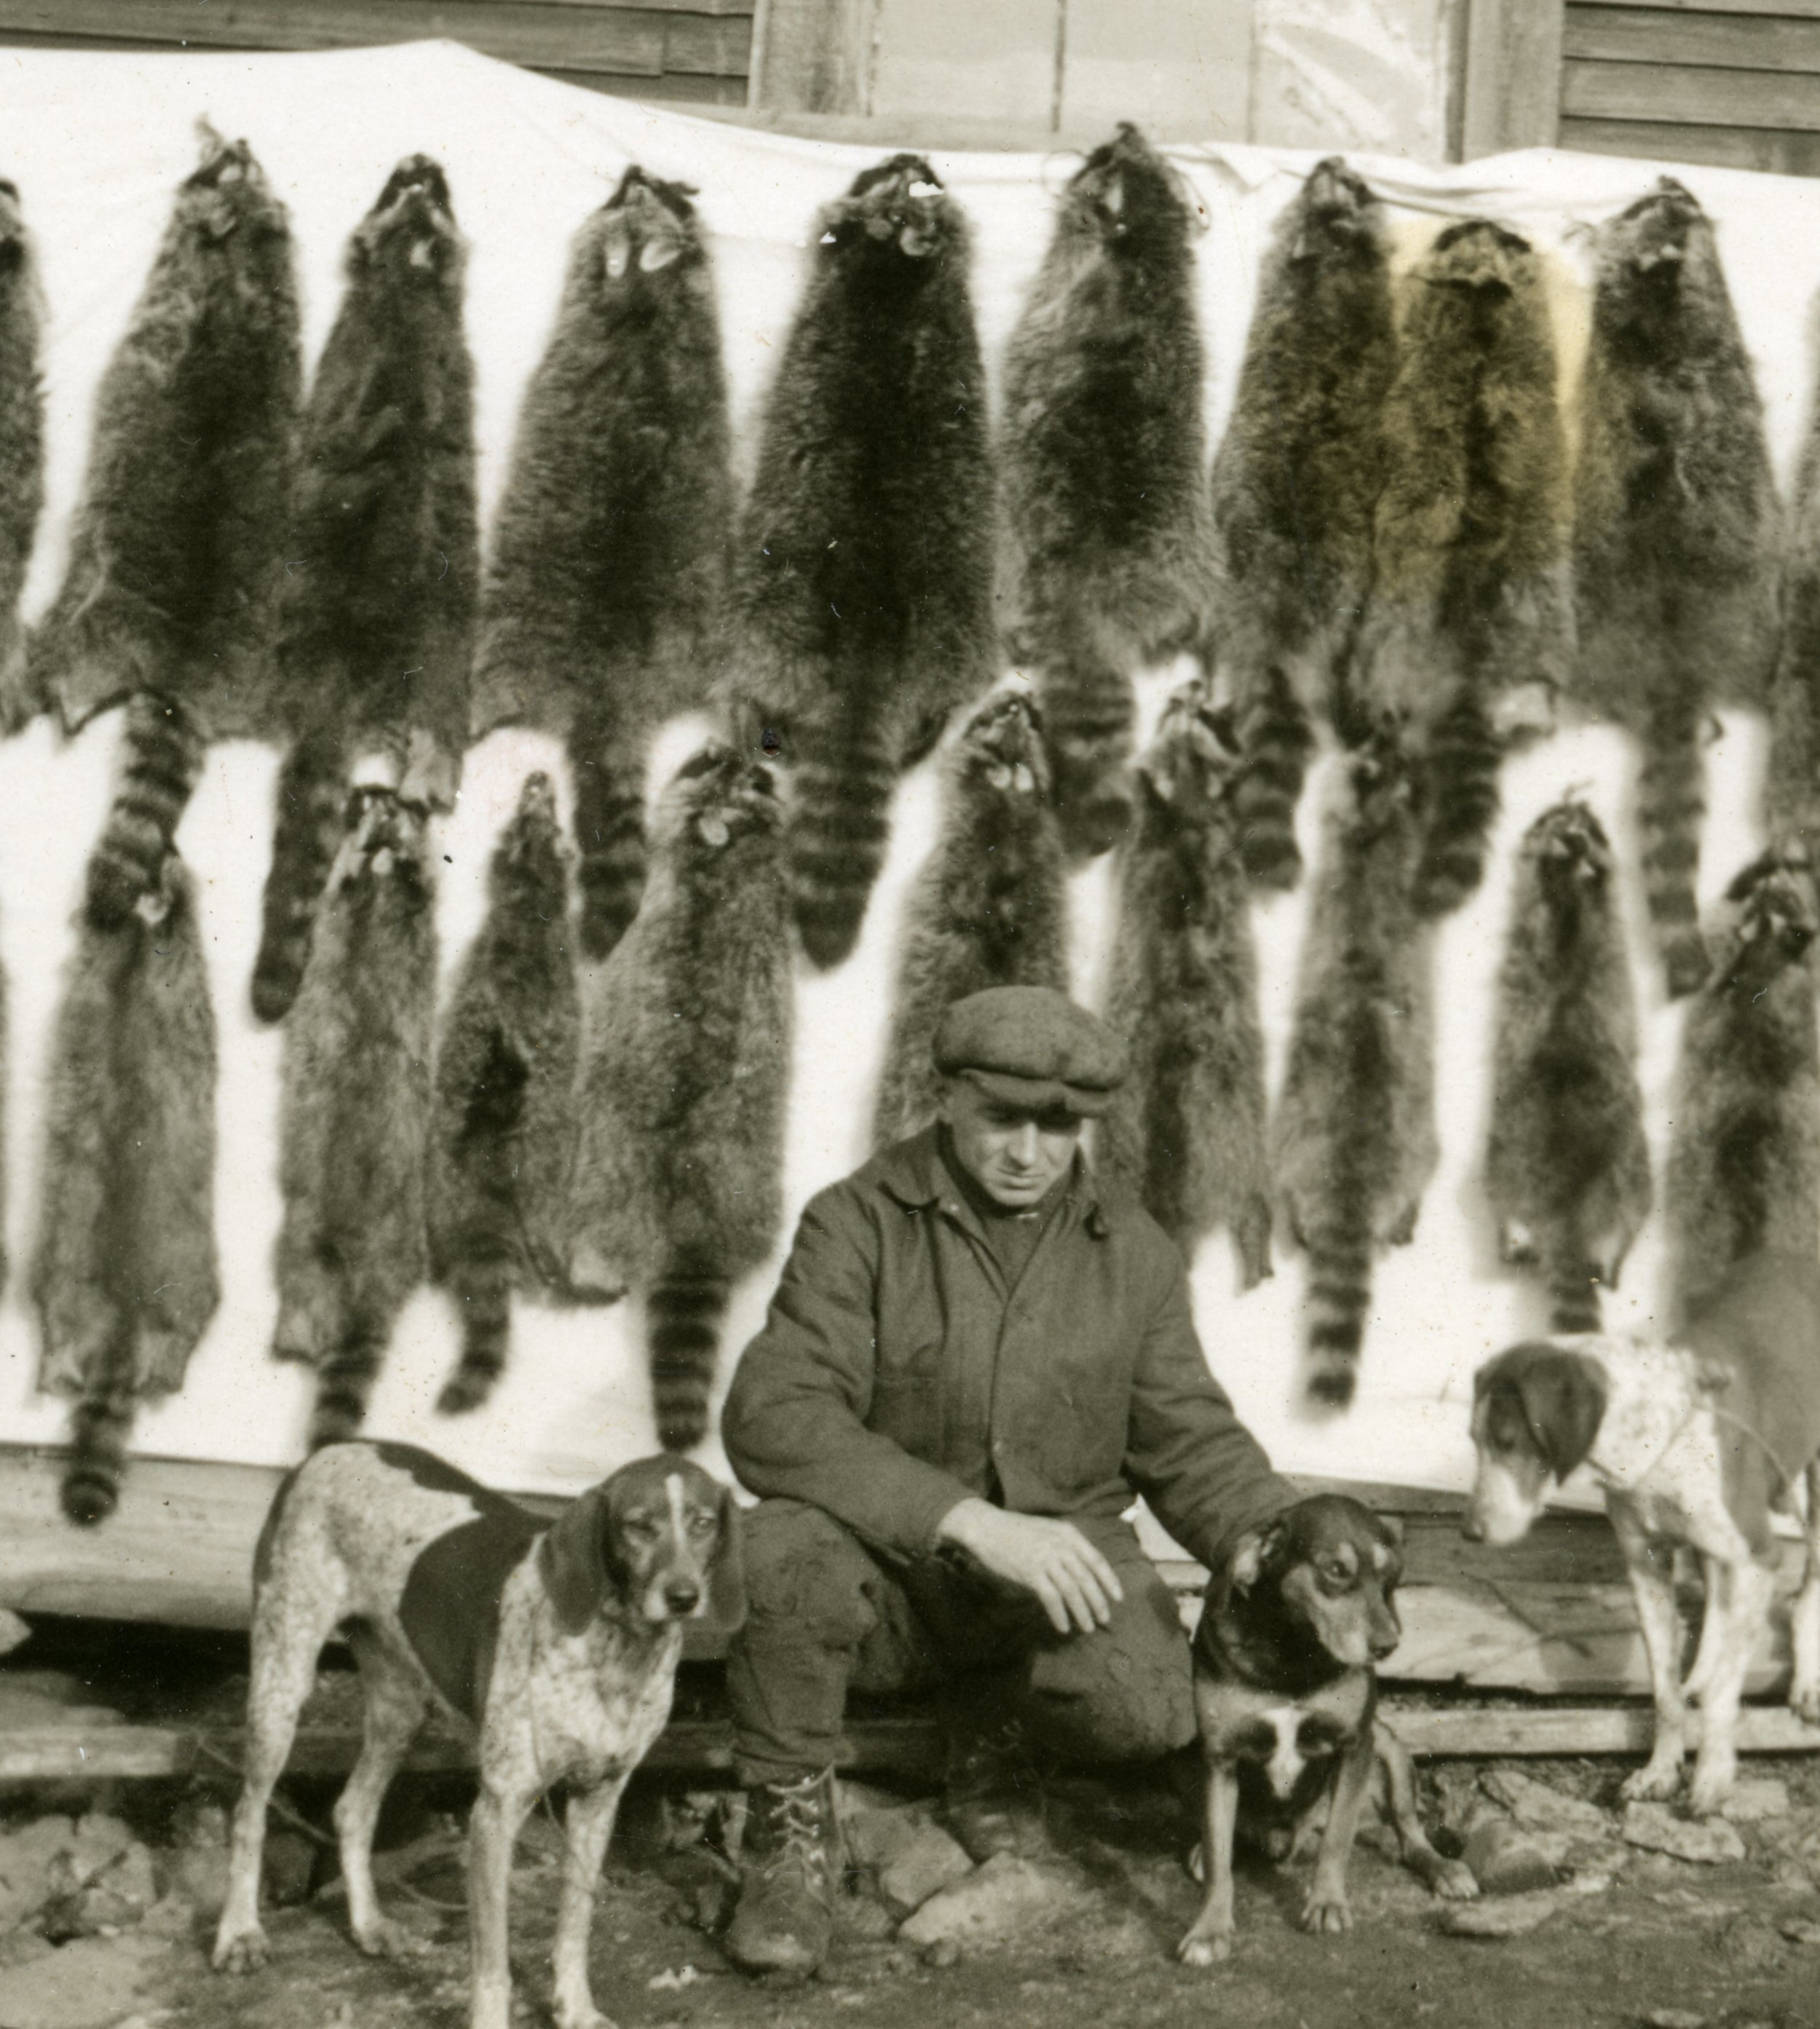 Sy Osmer and his dogs